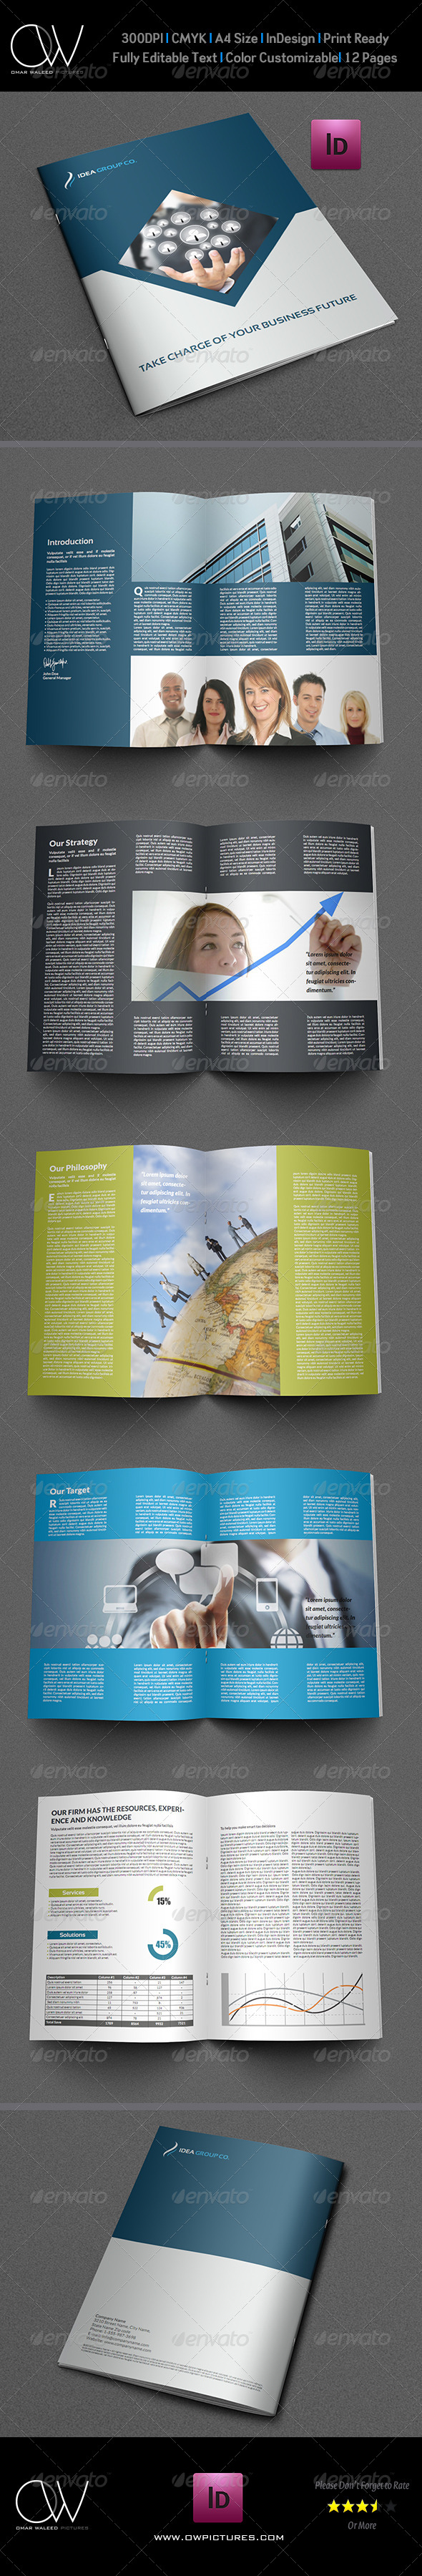 Company Brochure Template Vol.9 - 12 Pages - Corporate Brochures